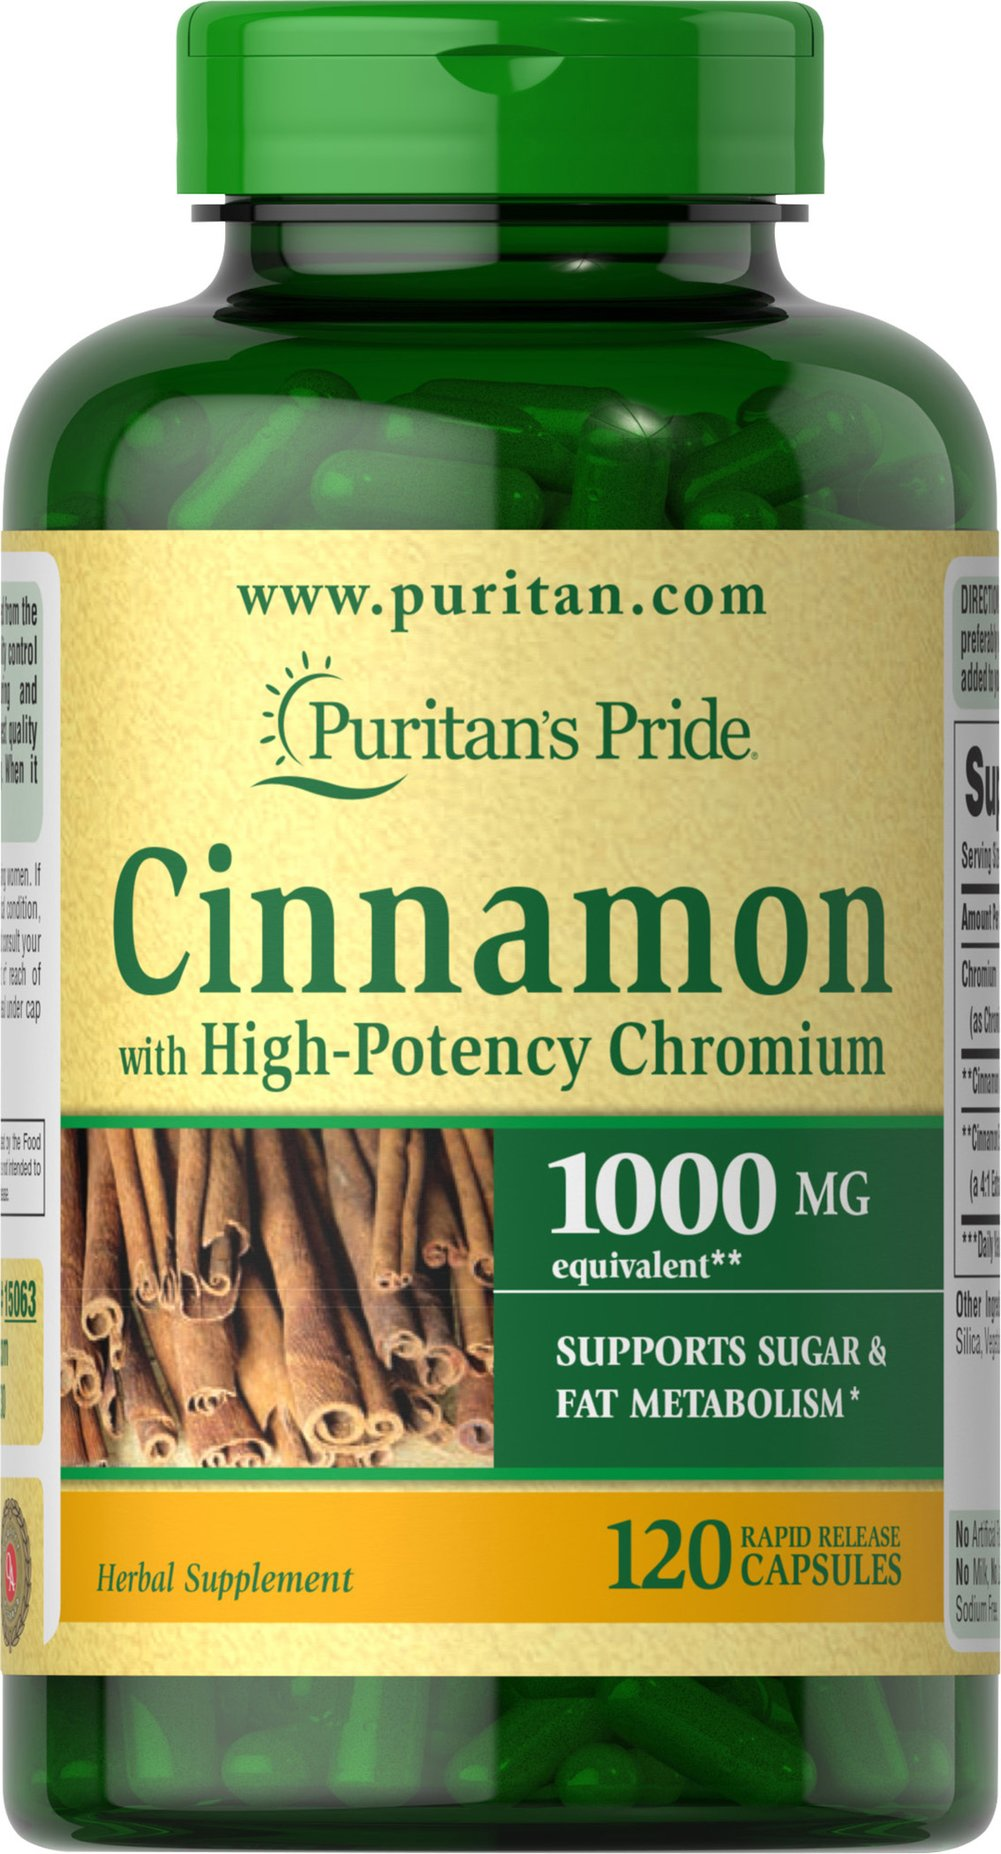 Cinnamon Complex with High Potency Chromium  120 Capsules 1000 mg $24.99